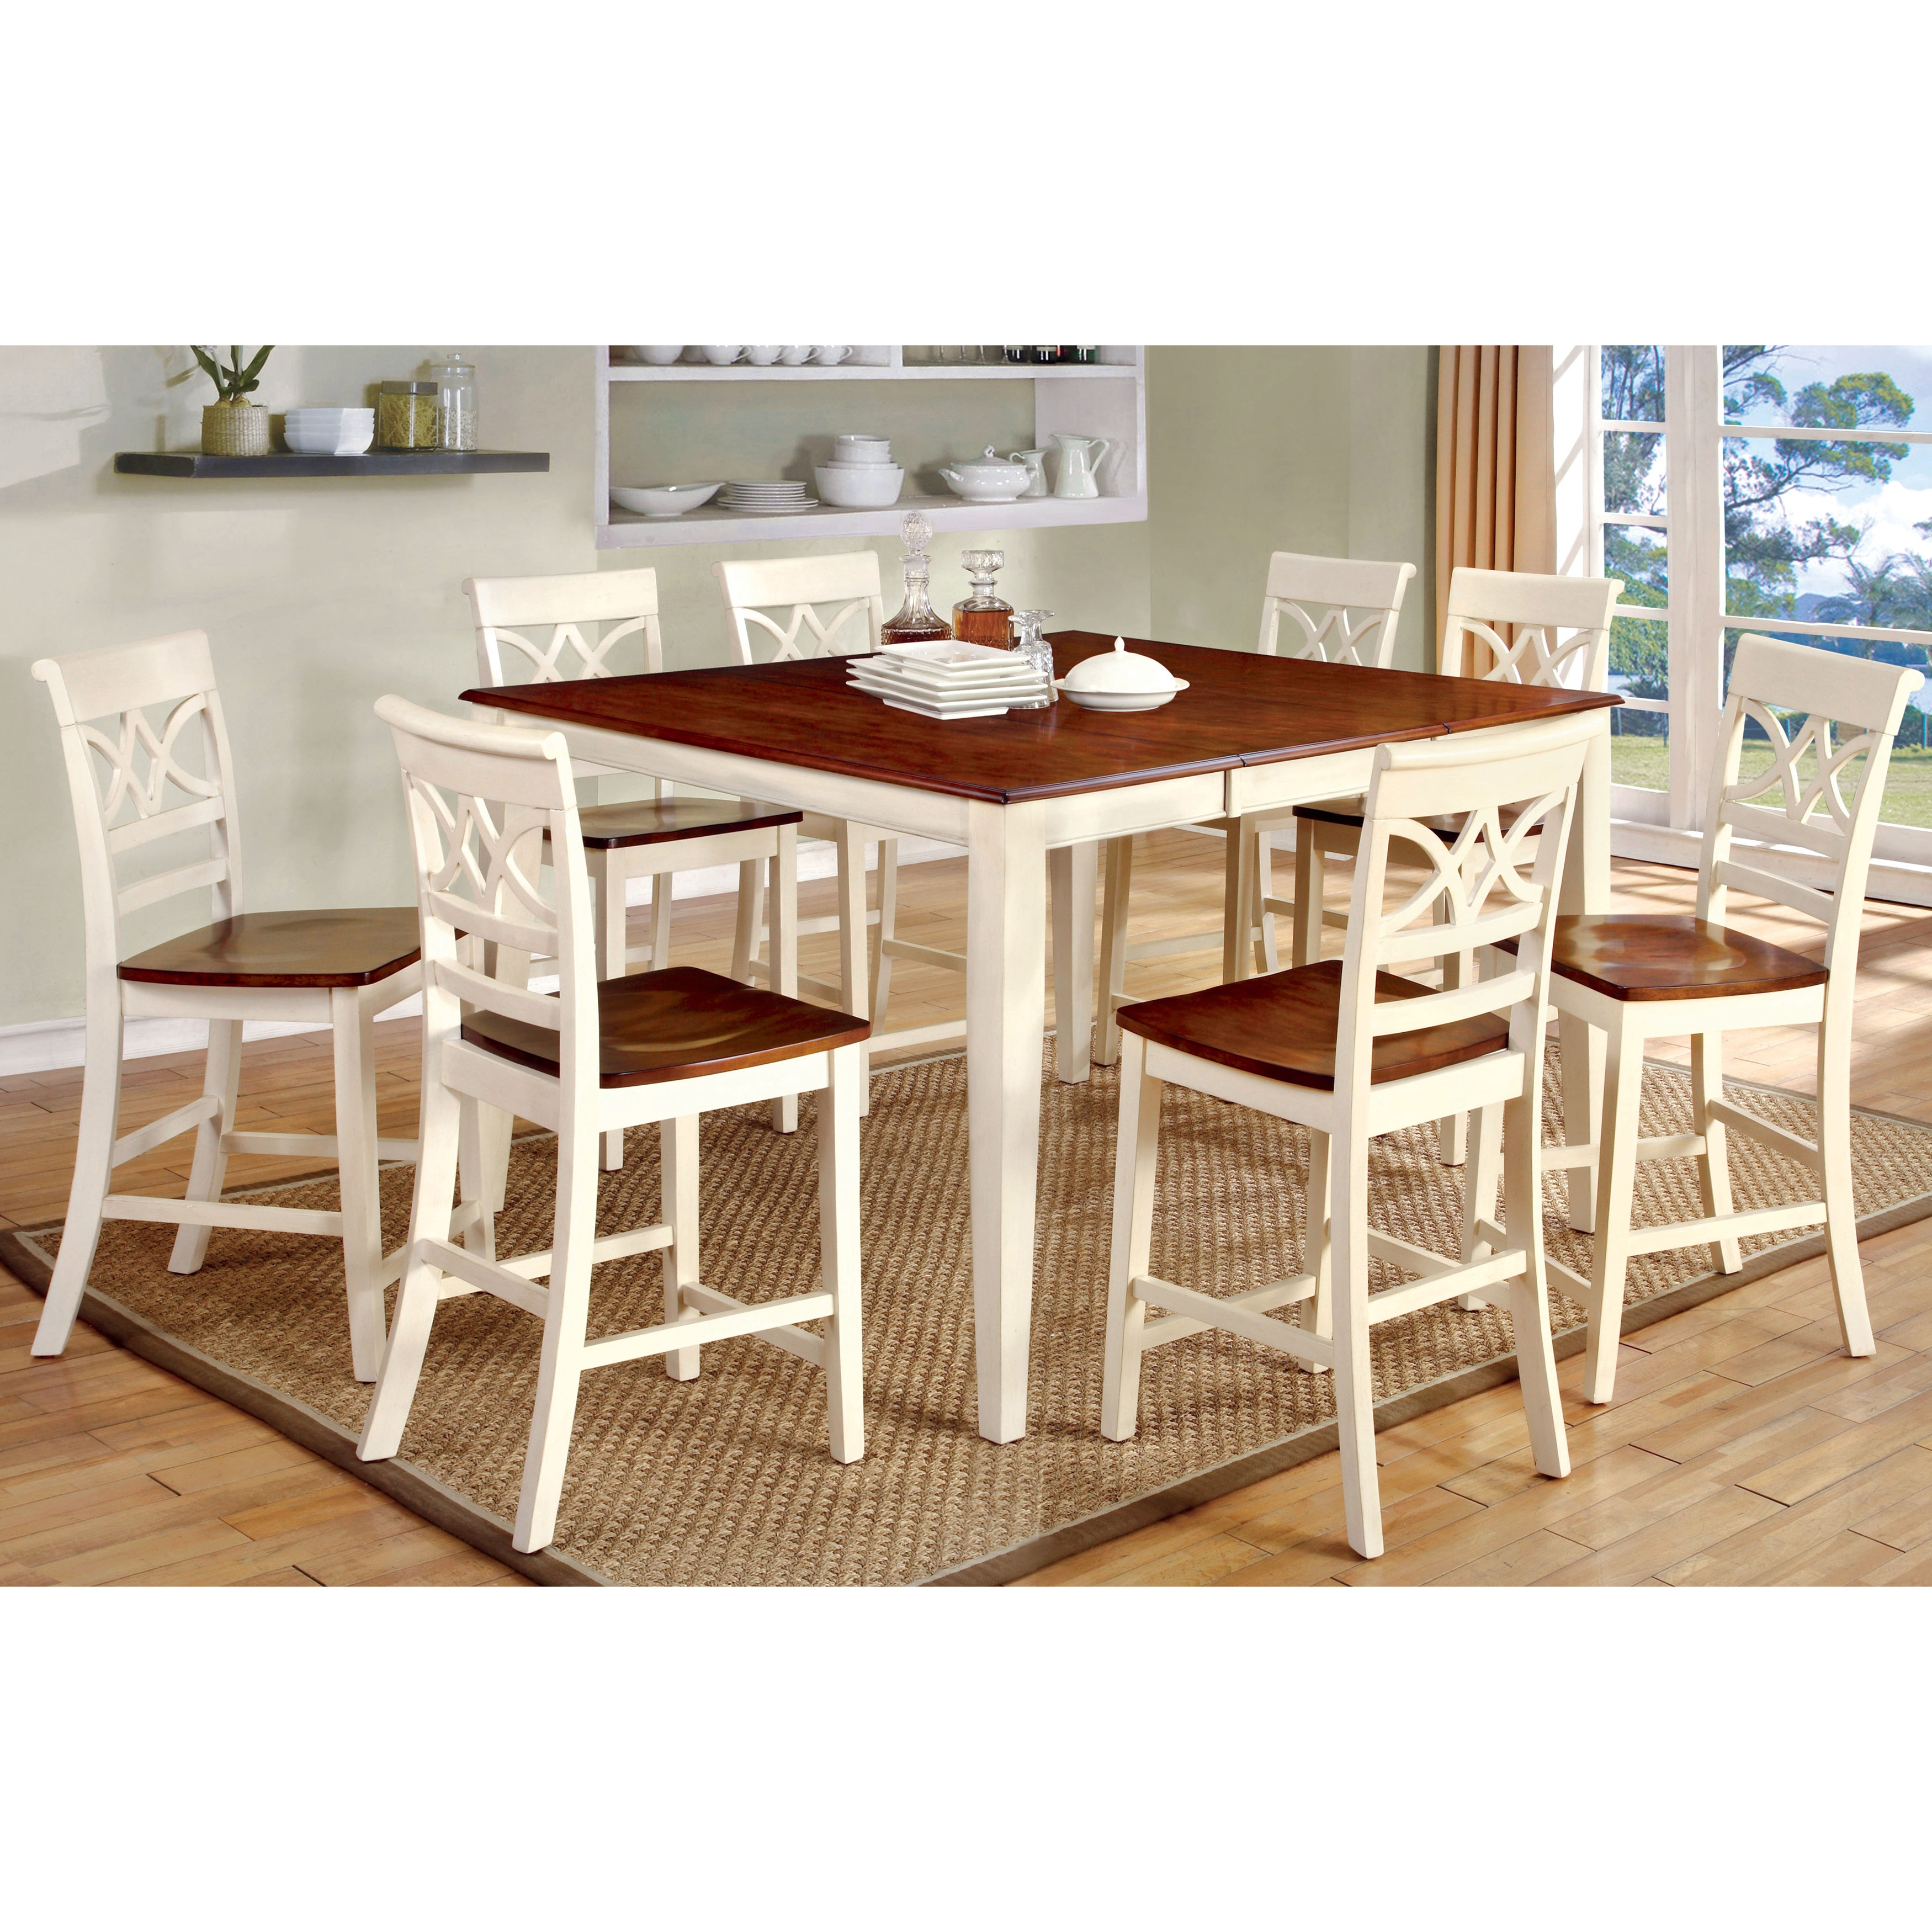 Furniture of America Betsy Joan Duo-Tone 9-Piece Counter Height Table Set  sc 1 st  Overstock & Shop Furniture of America Betsy Joan Duo-Tone 9-Piece Counter Height ...